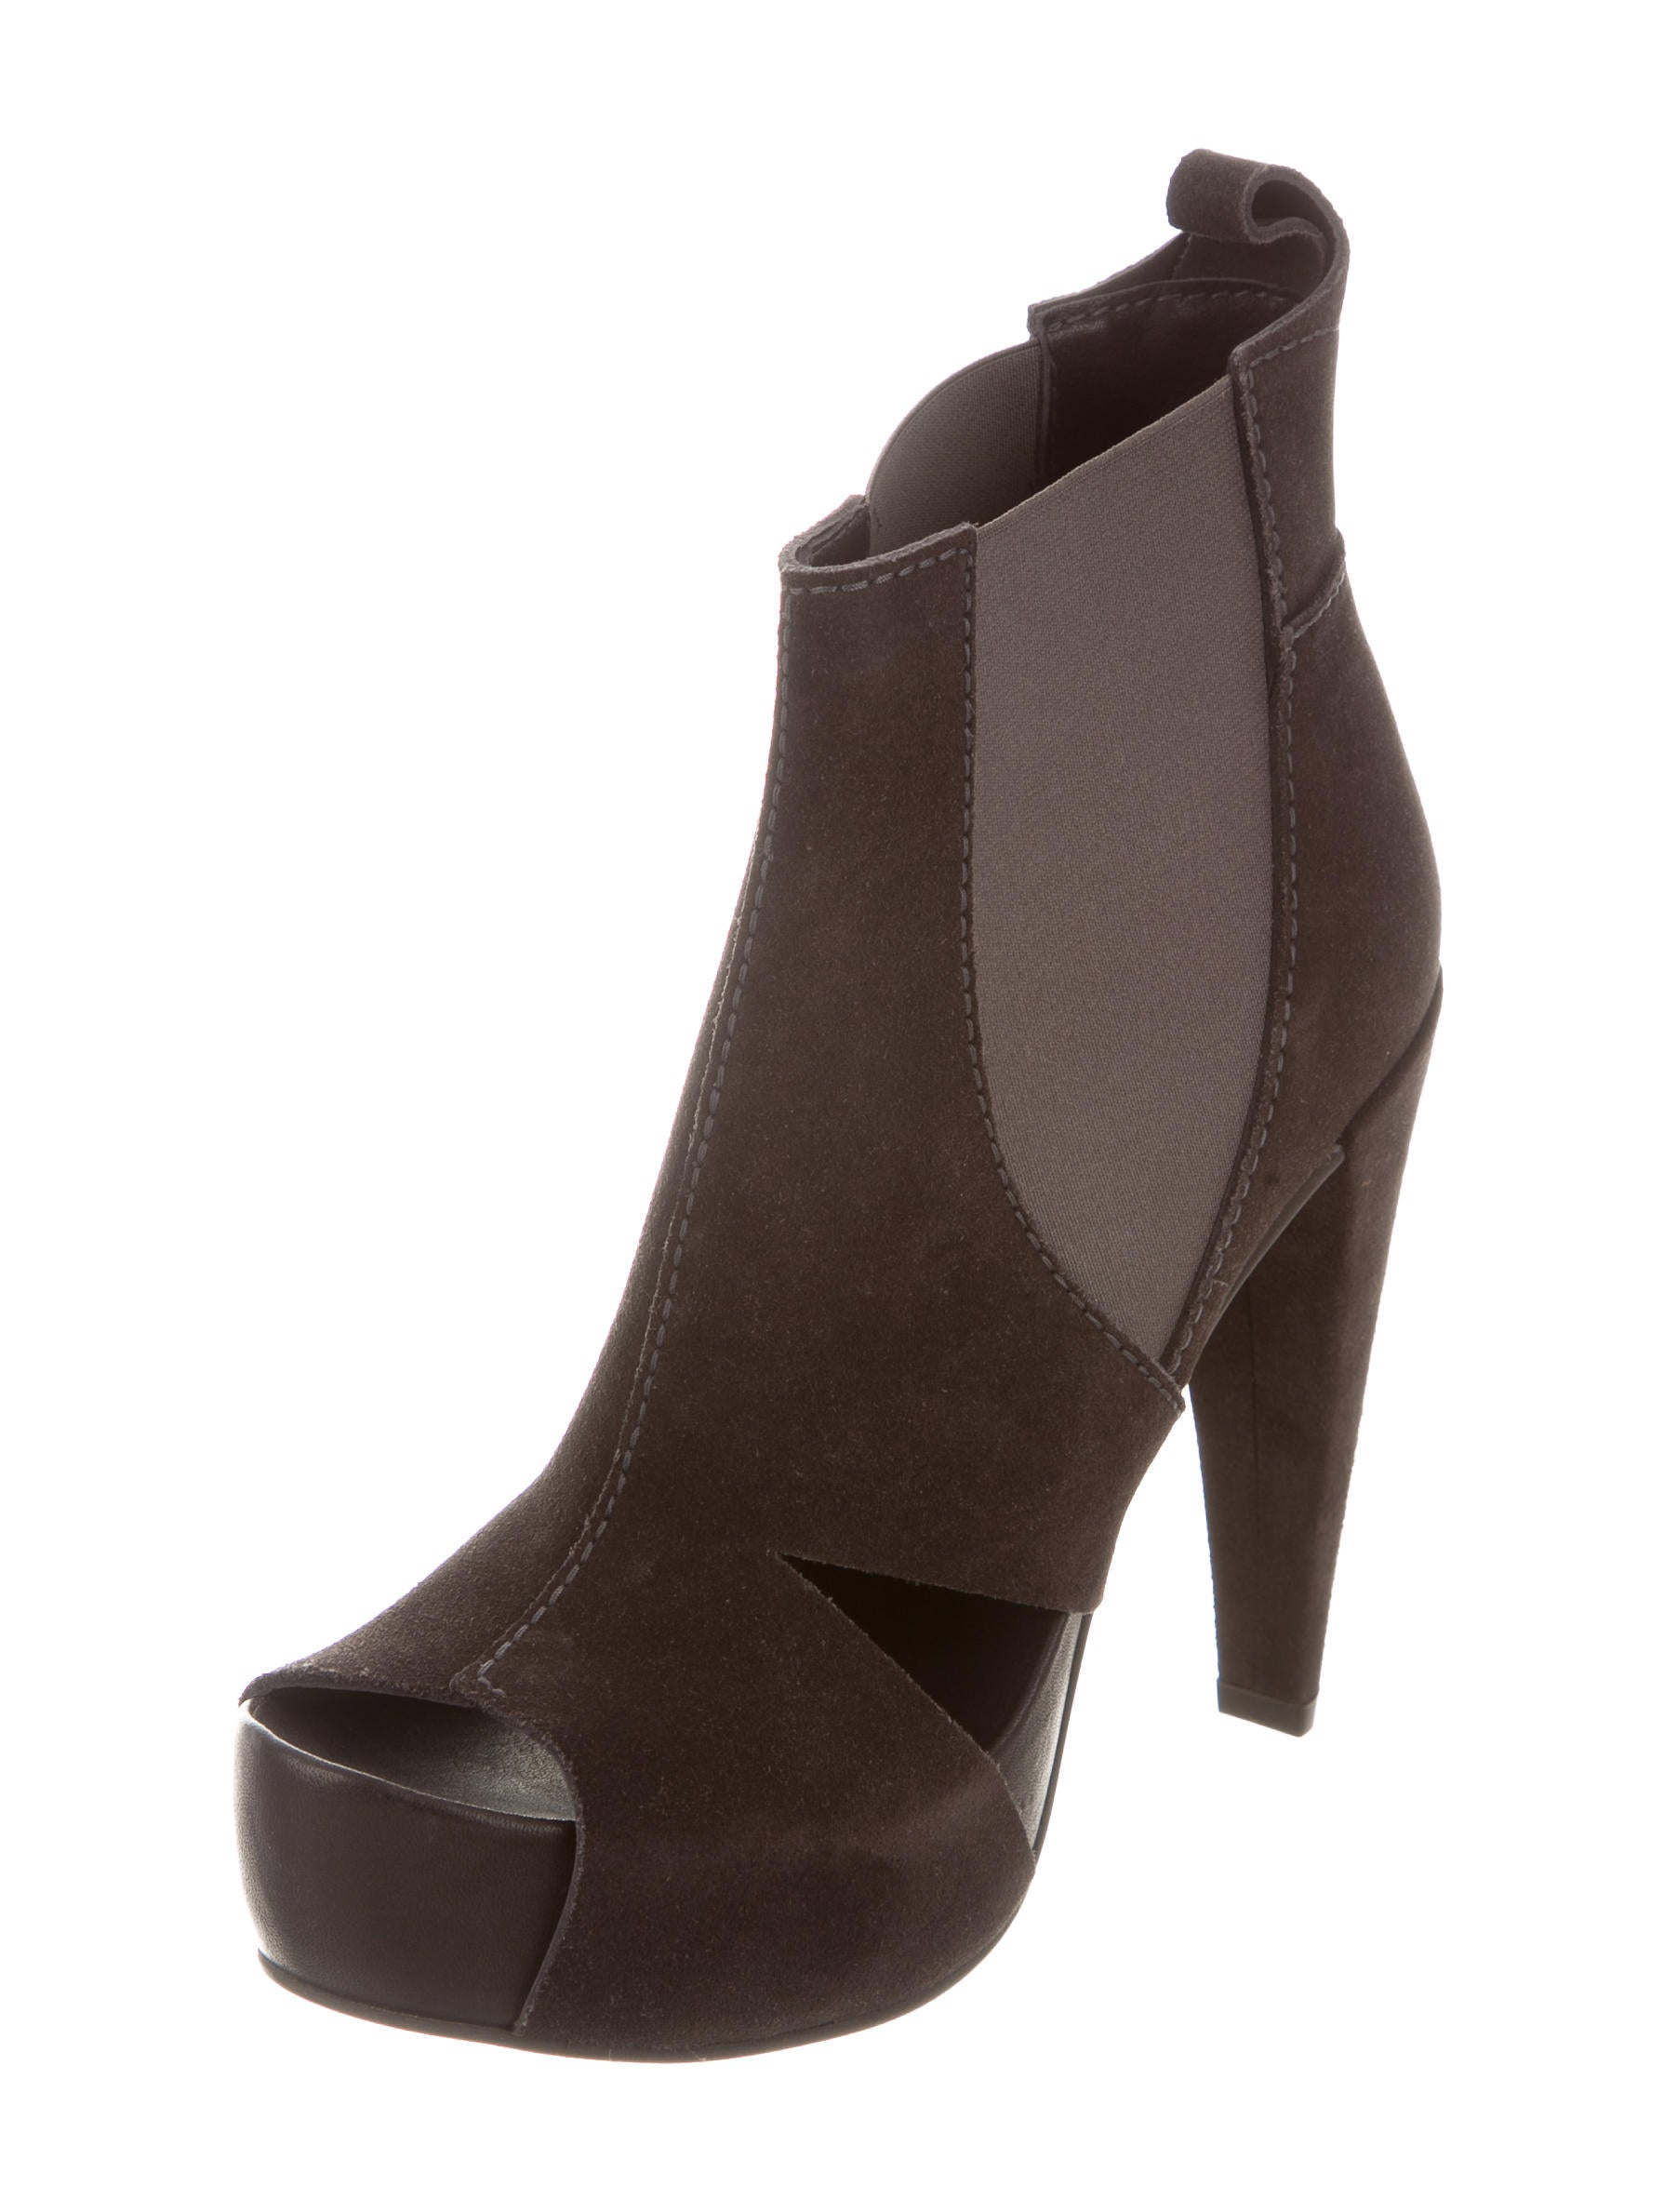 pedro garcia suede cutout ankle boots shoes ped22436